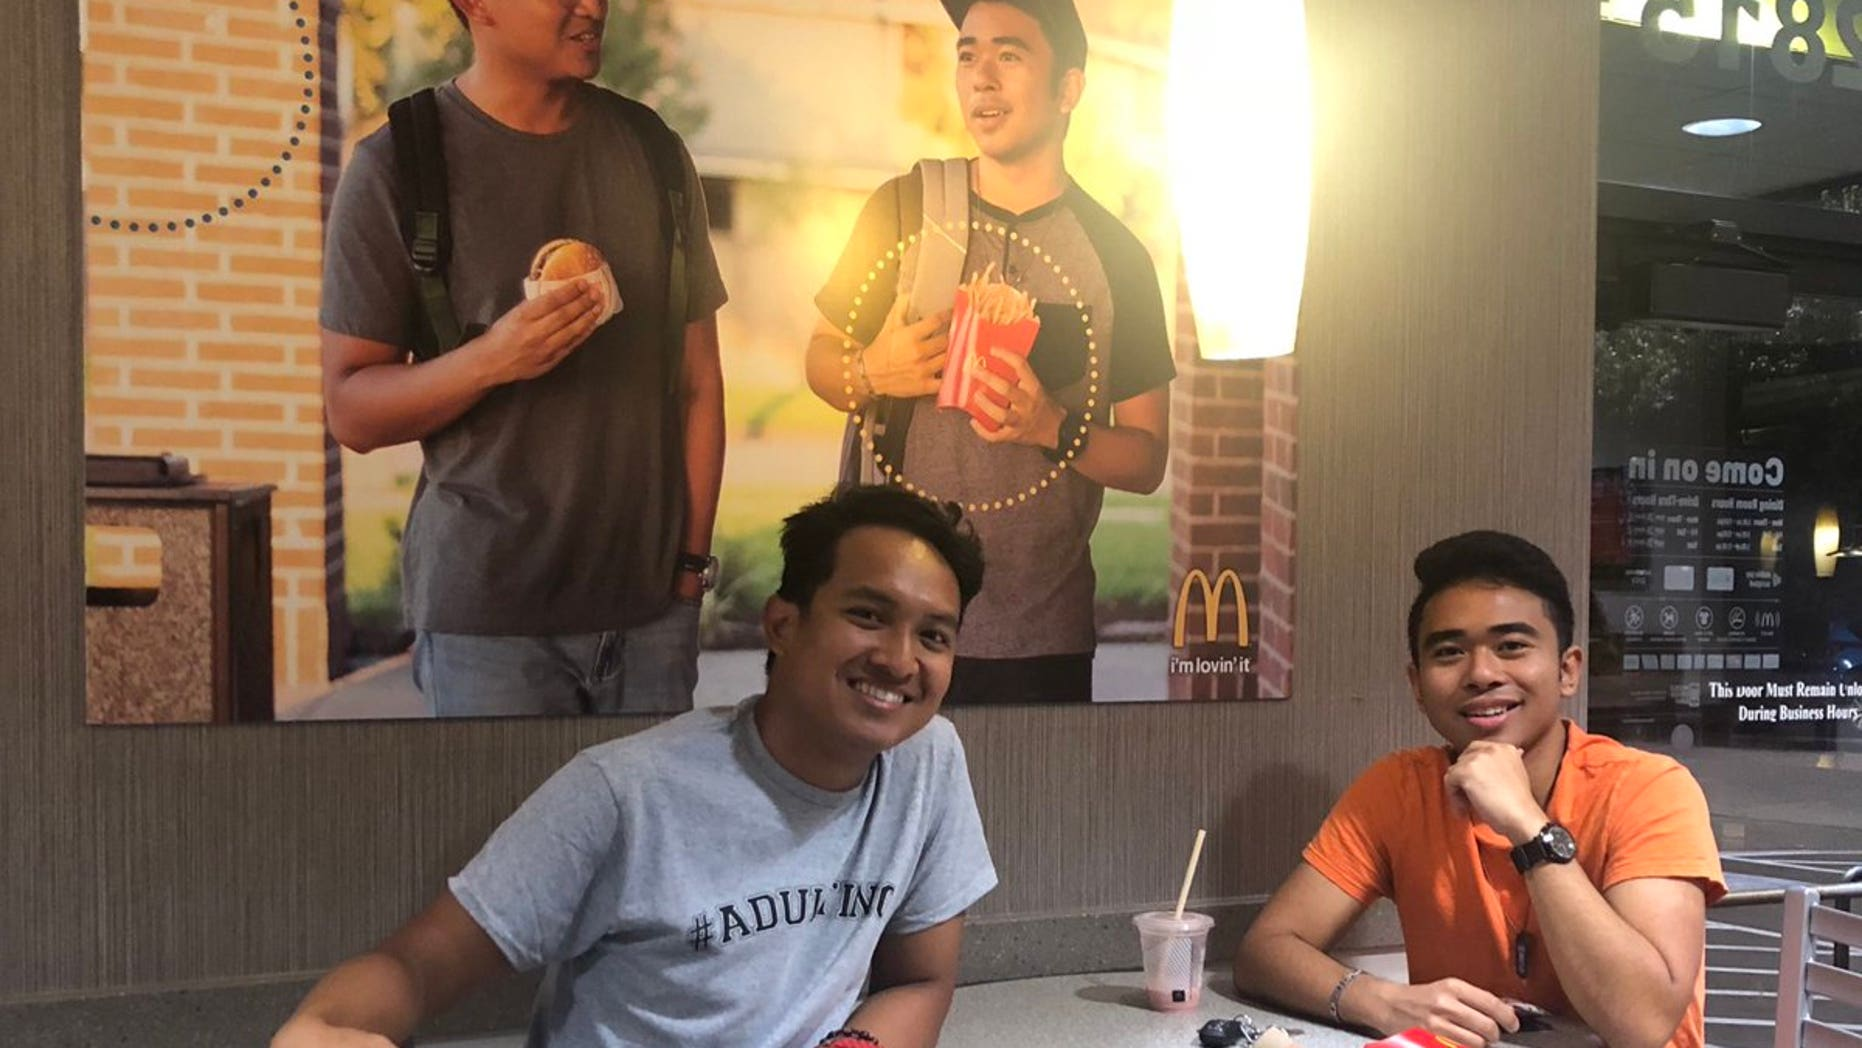 The two men placed the picture to promote diversity at the fast-food chain.